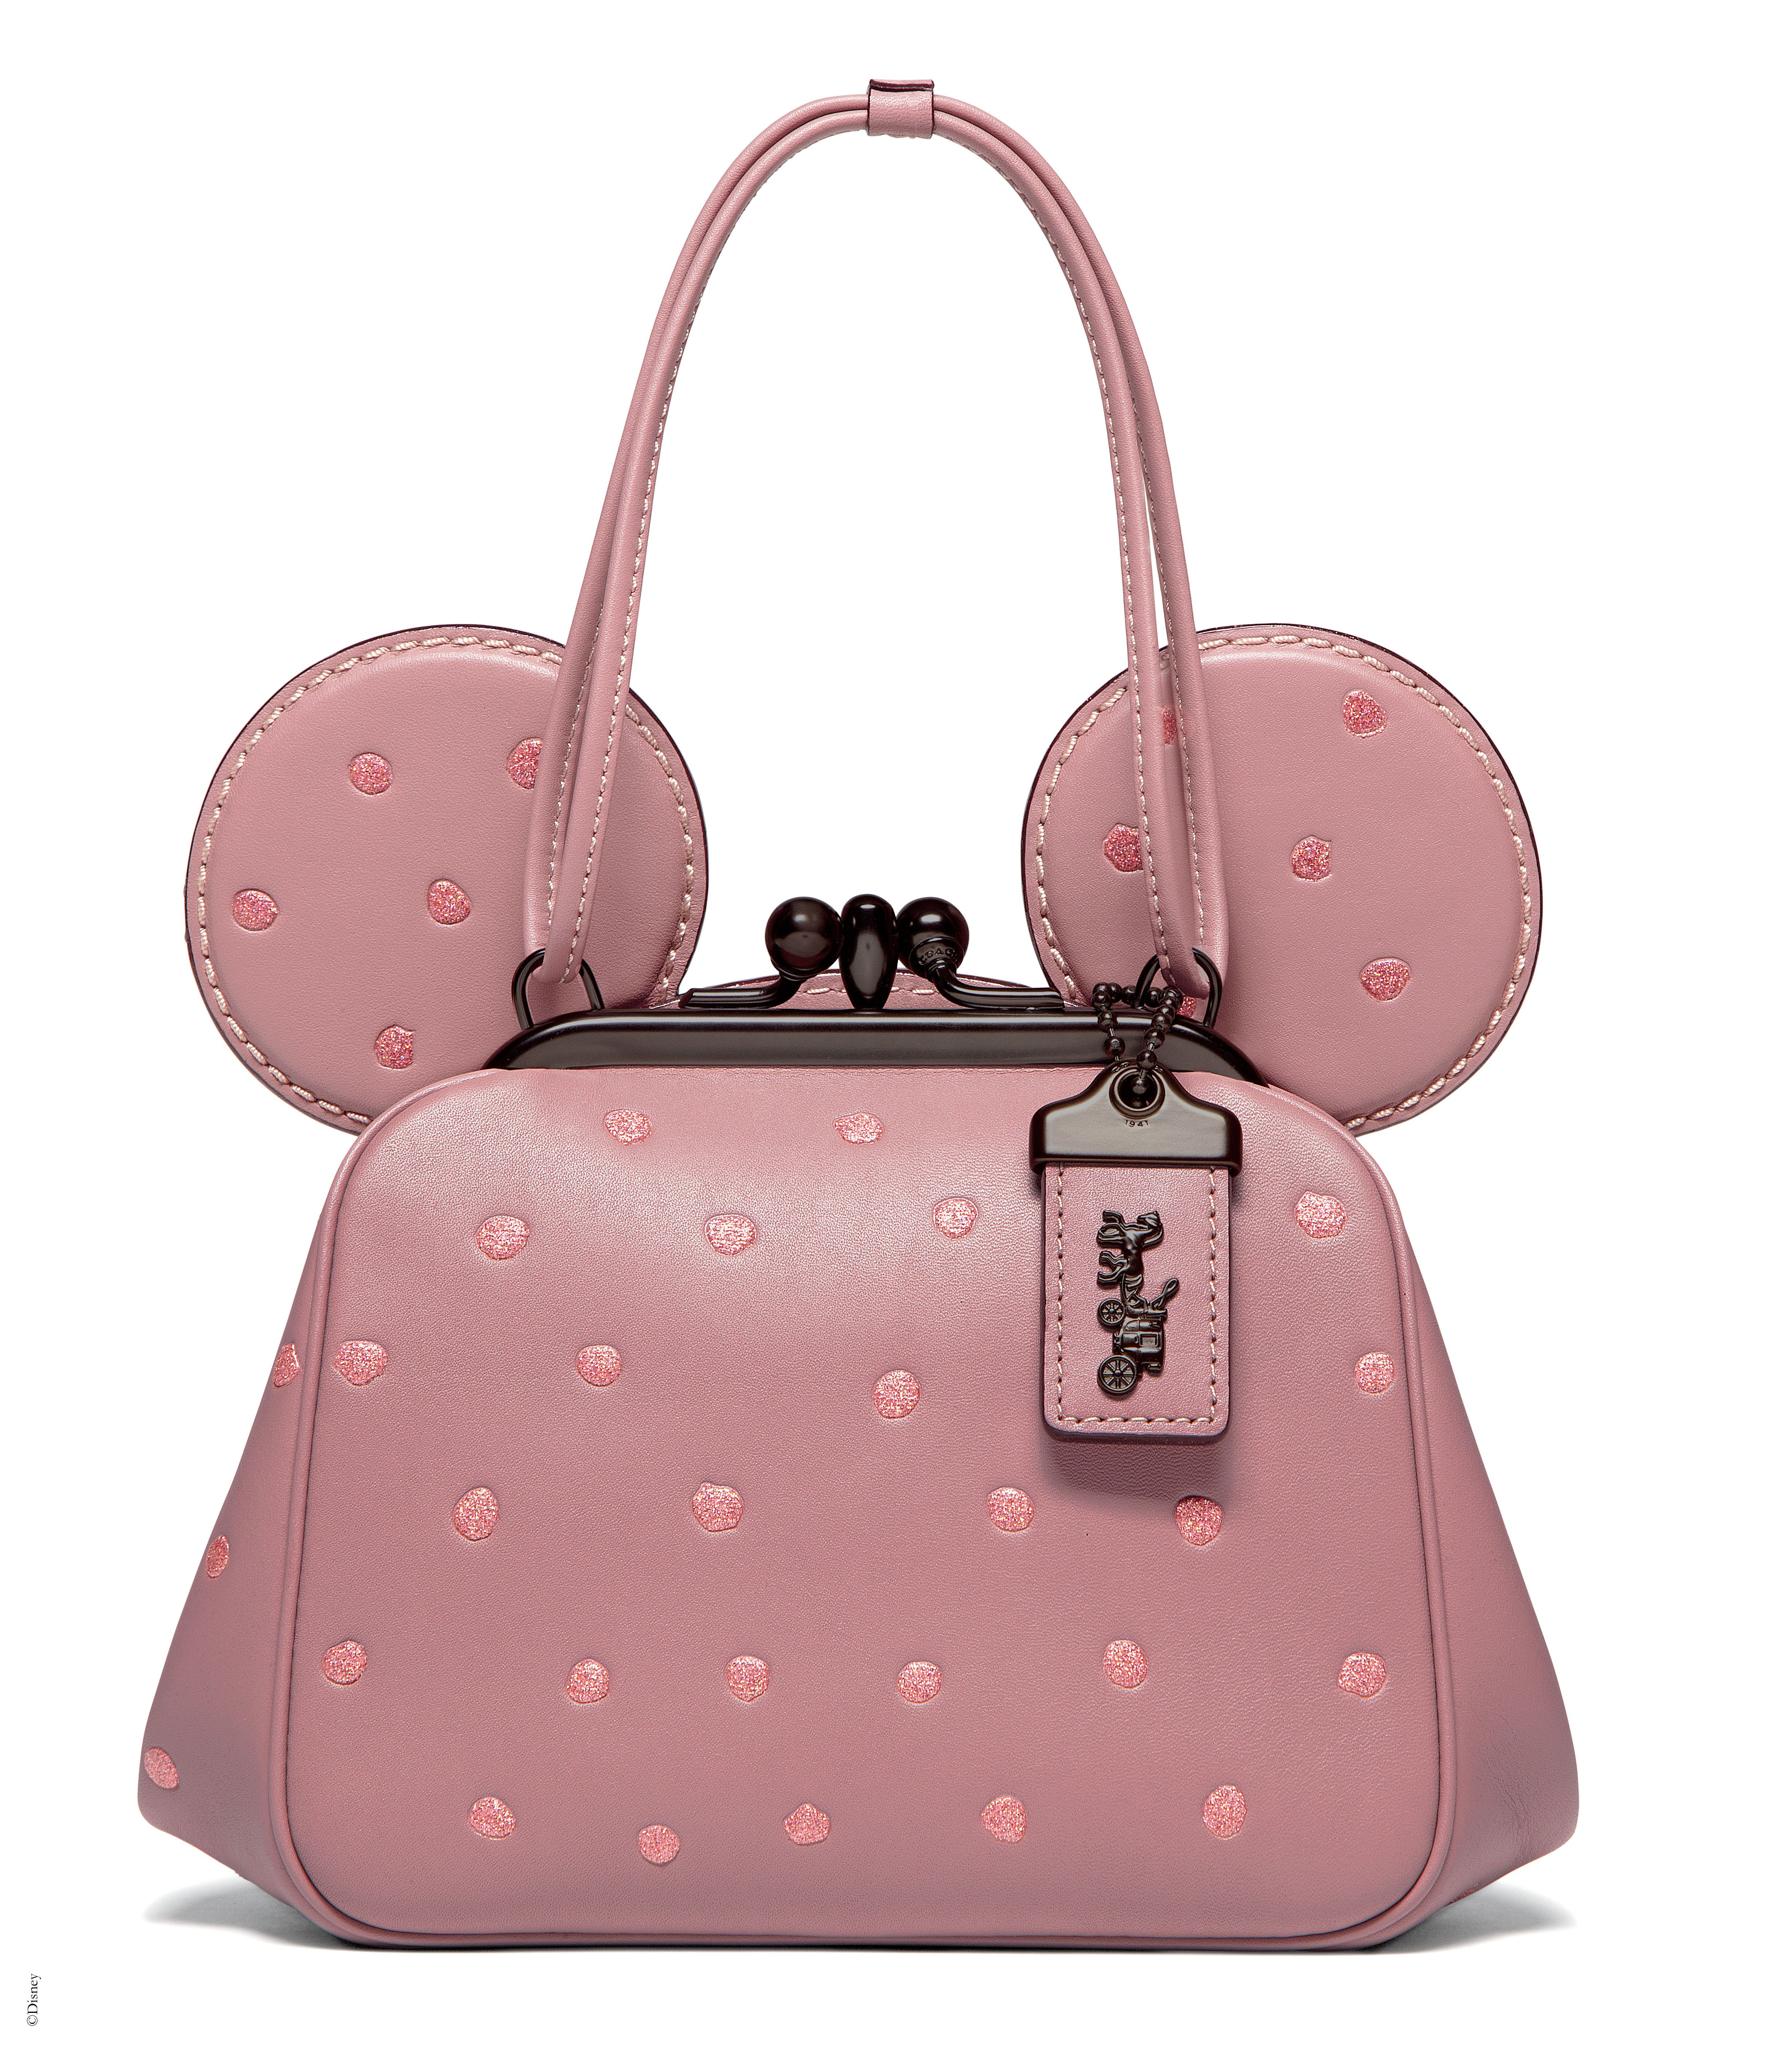 1b54f7d8b4 Disney x Coach Minnie Mouse Collection - Shop Minnie Mouse Coach Purse and  Clothing Line